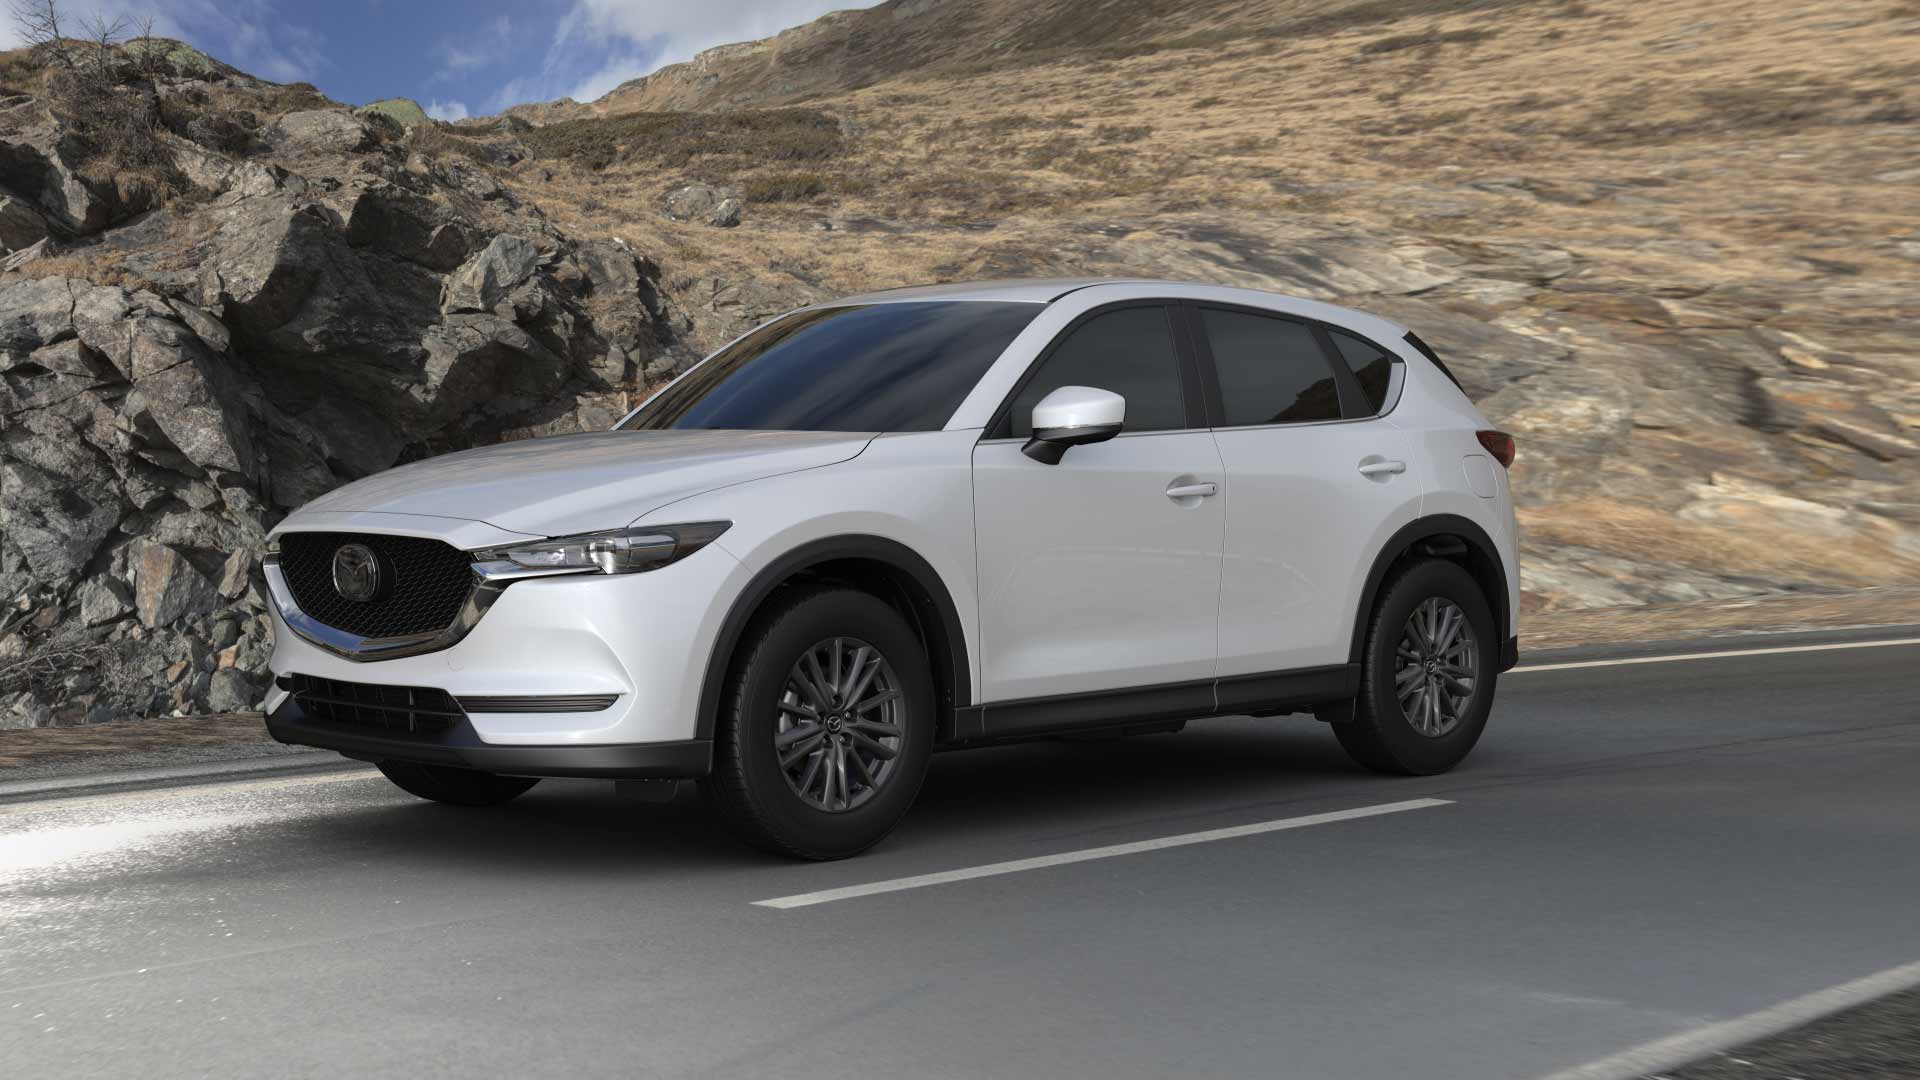 best tires for Mazda CX-5